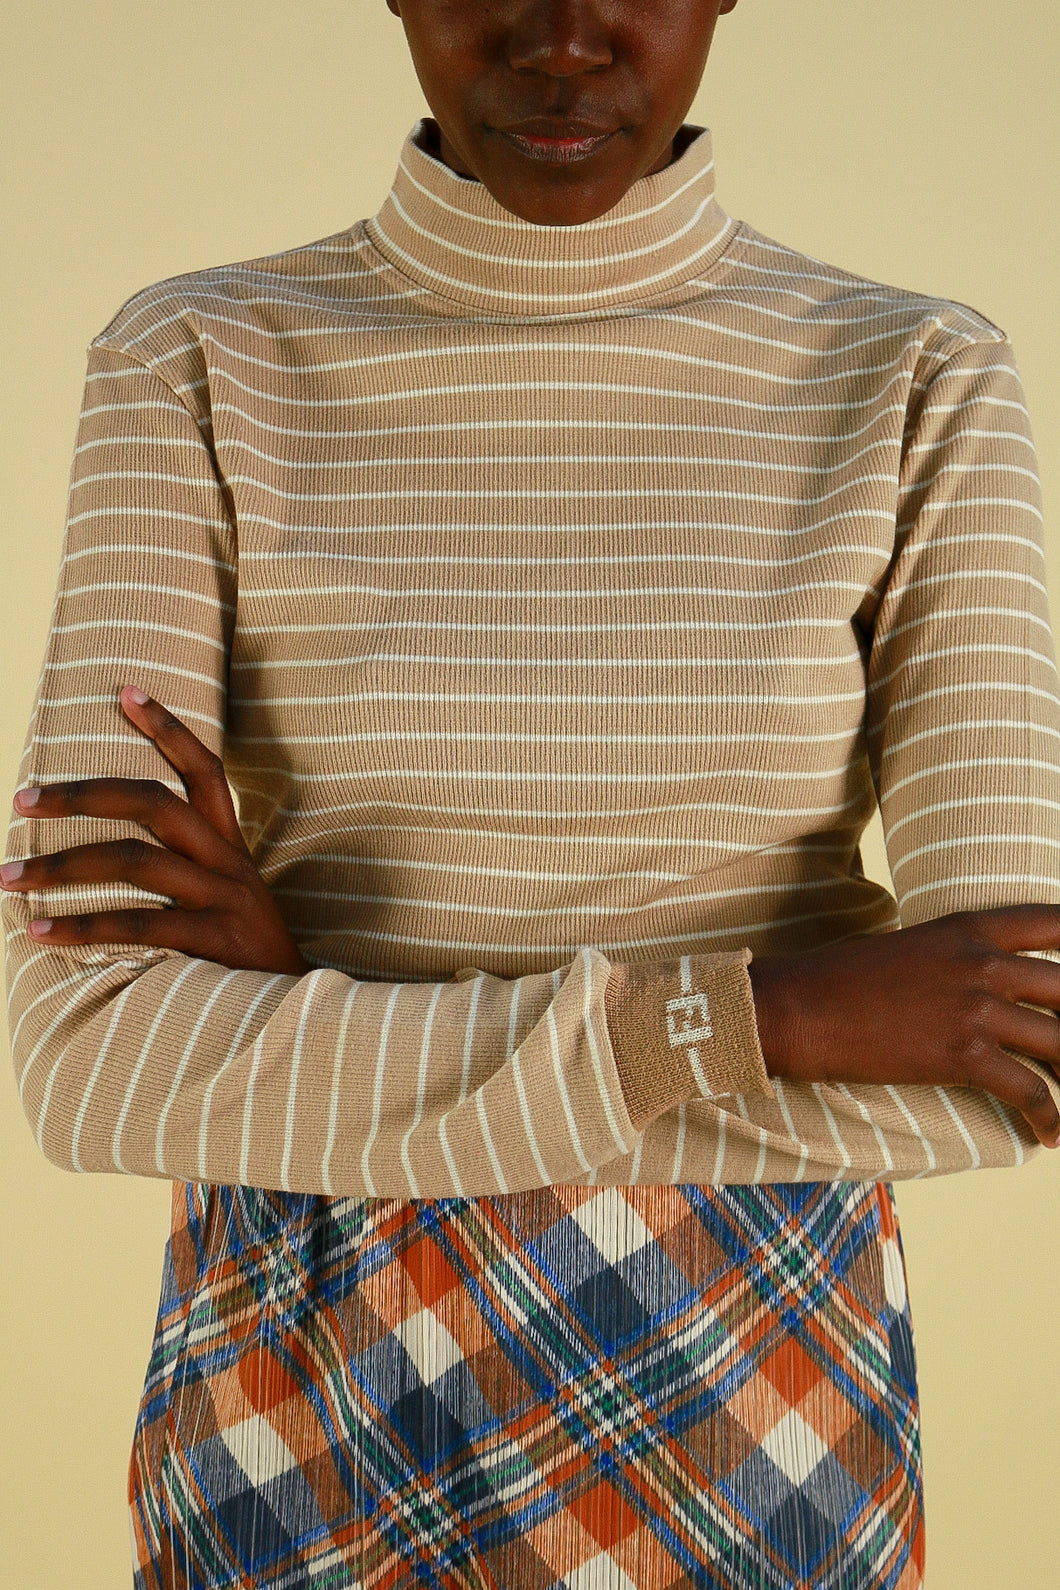 Vintage Fendi Jeans Striped Long Sleeve with Cuffed Logo